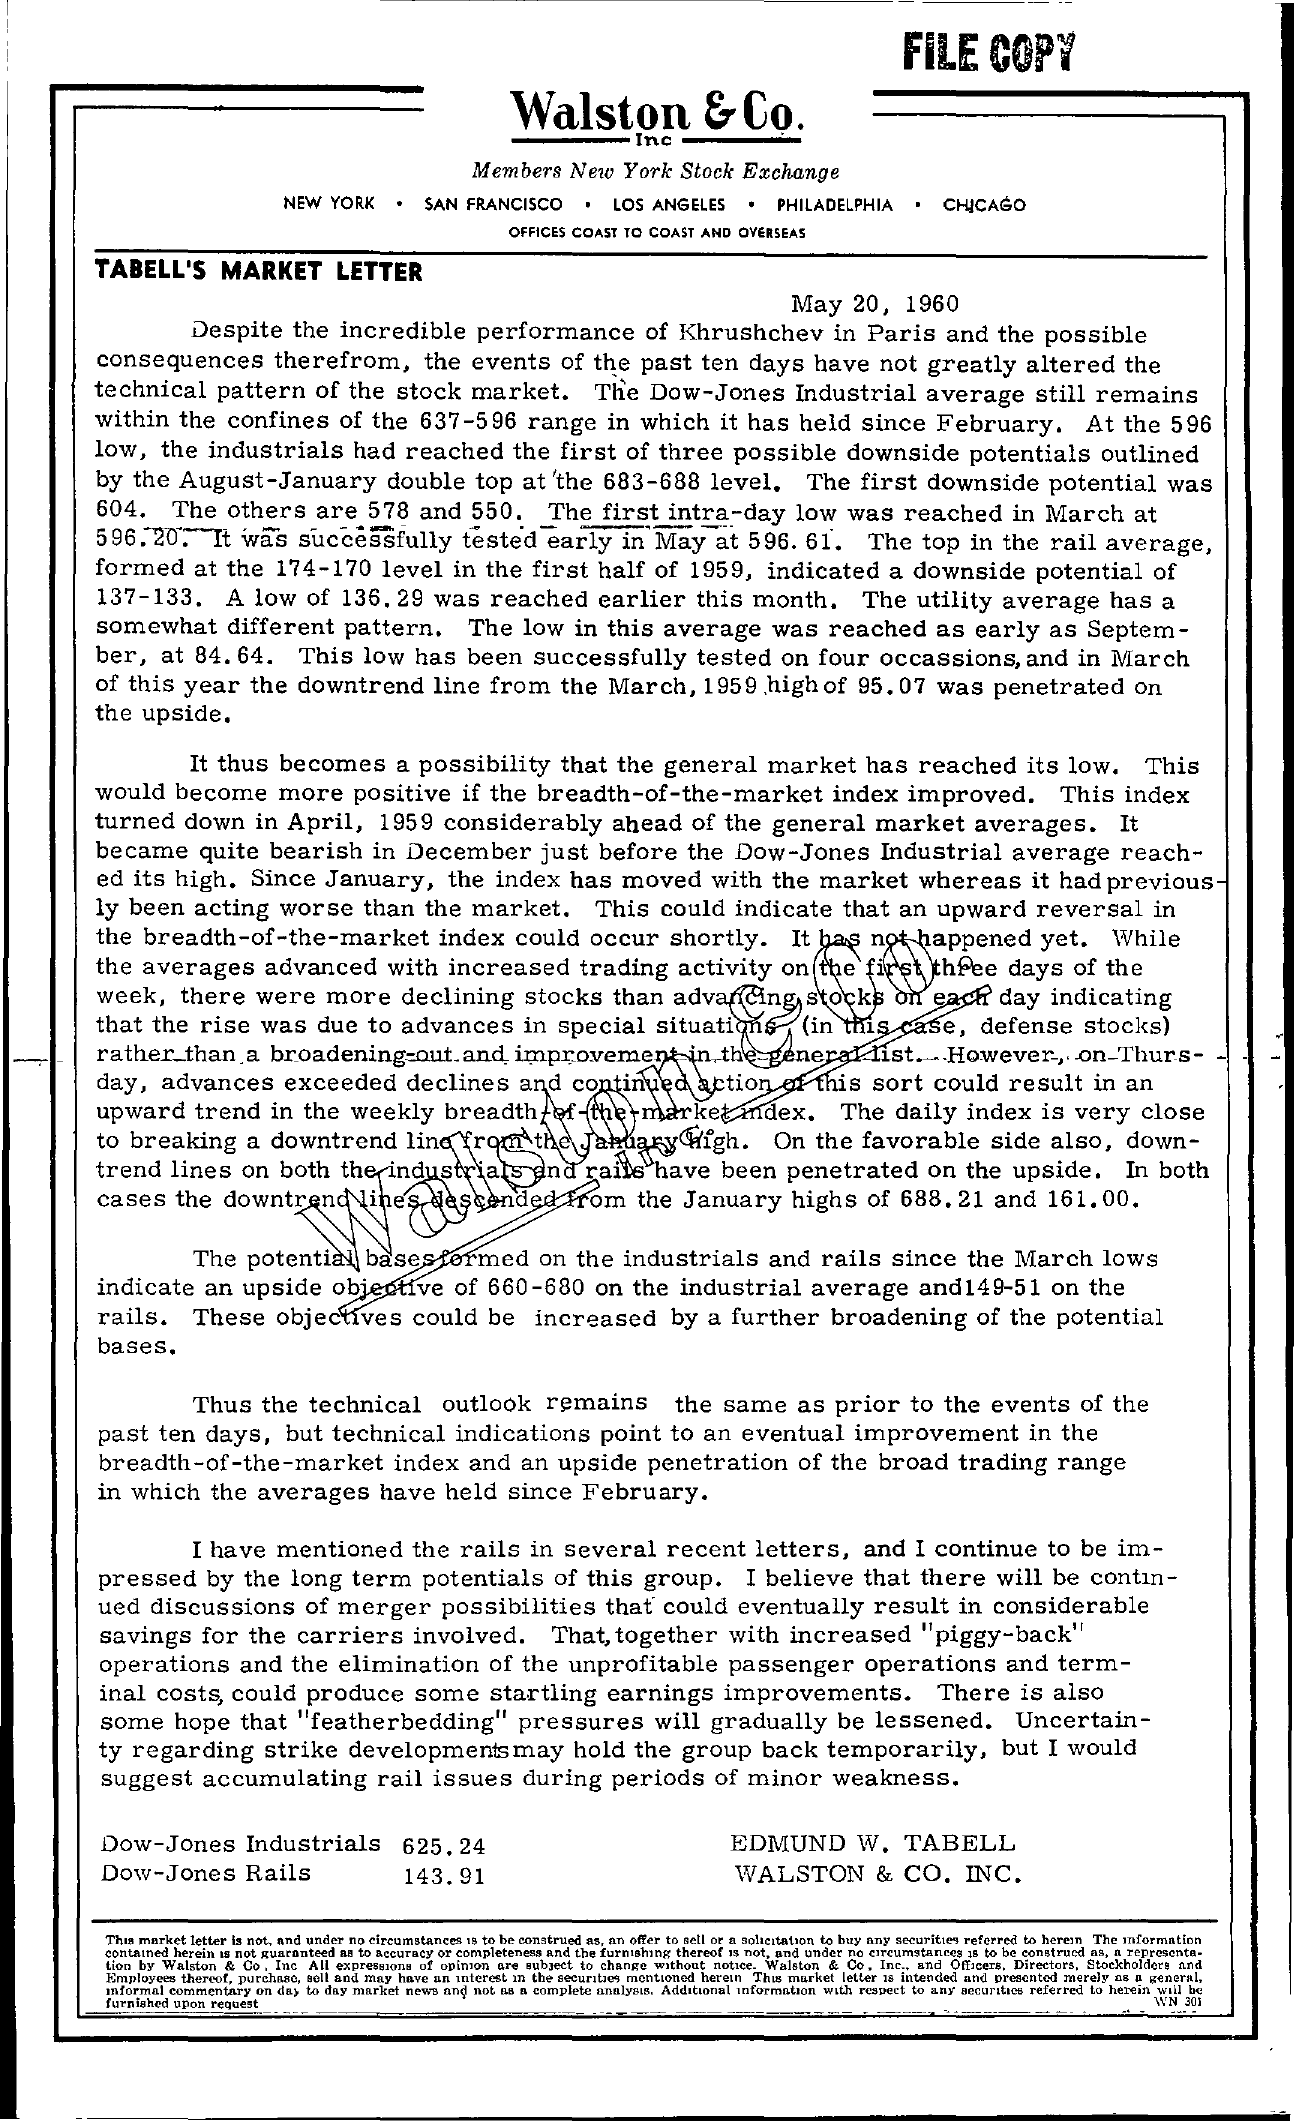 Tabell's Market Letter - May 20, 1960